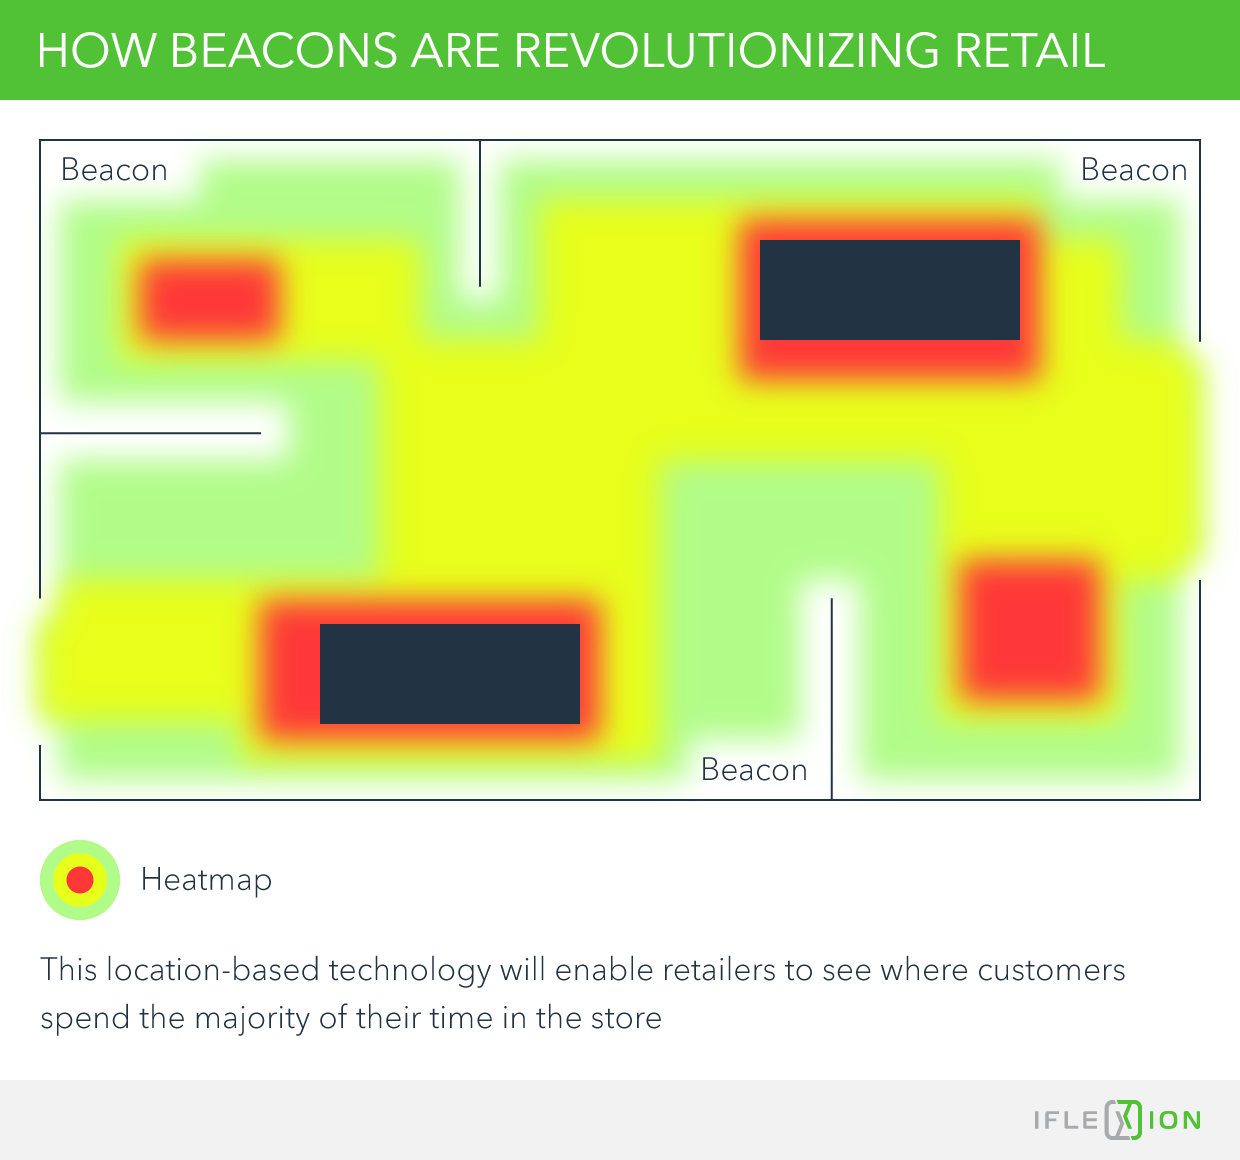 How beacons are revolutionizing retail